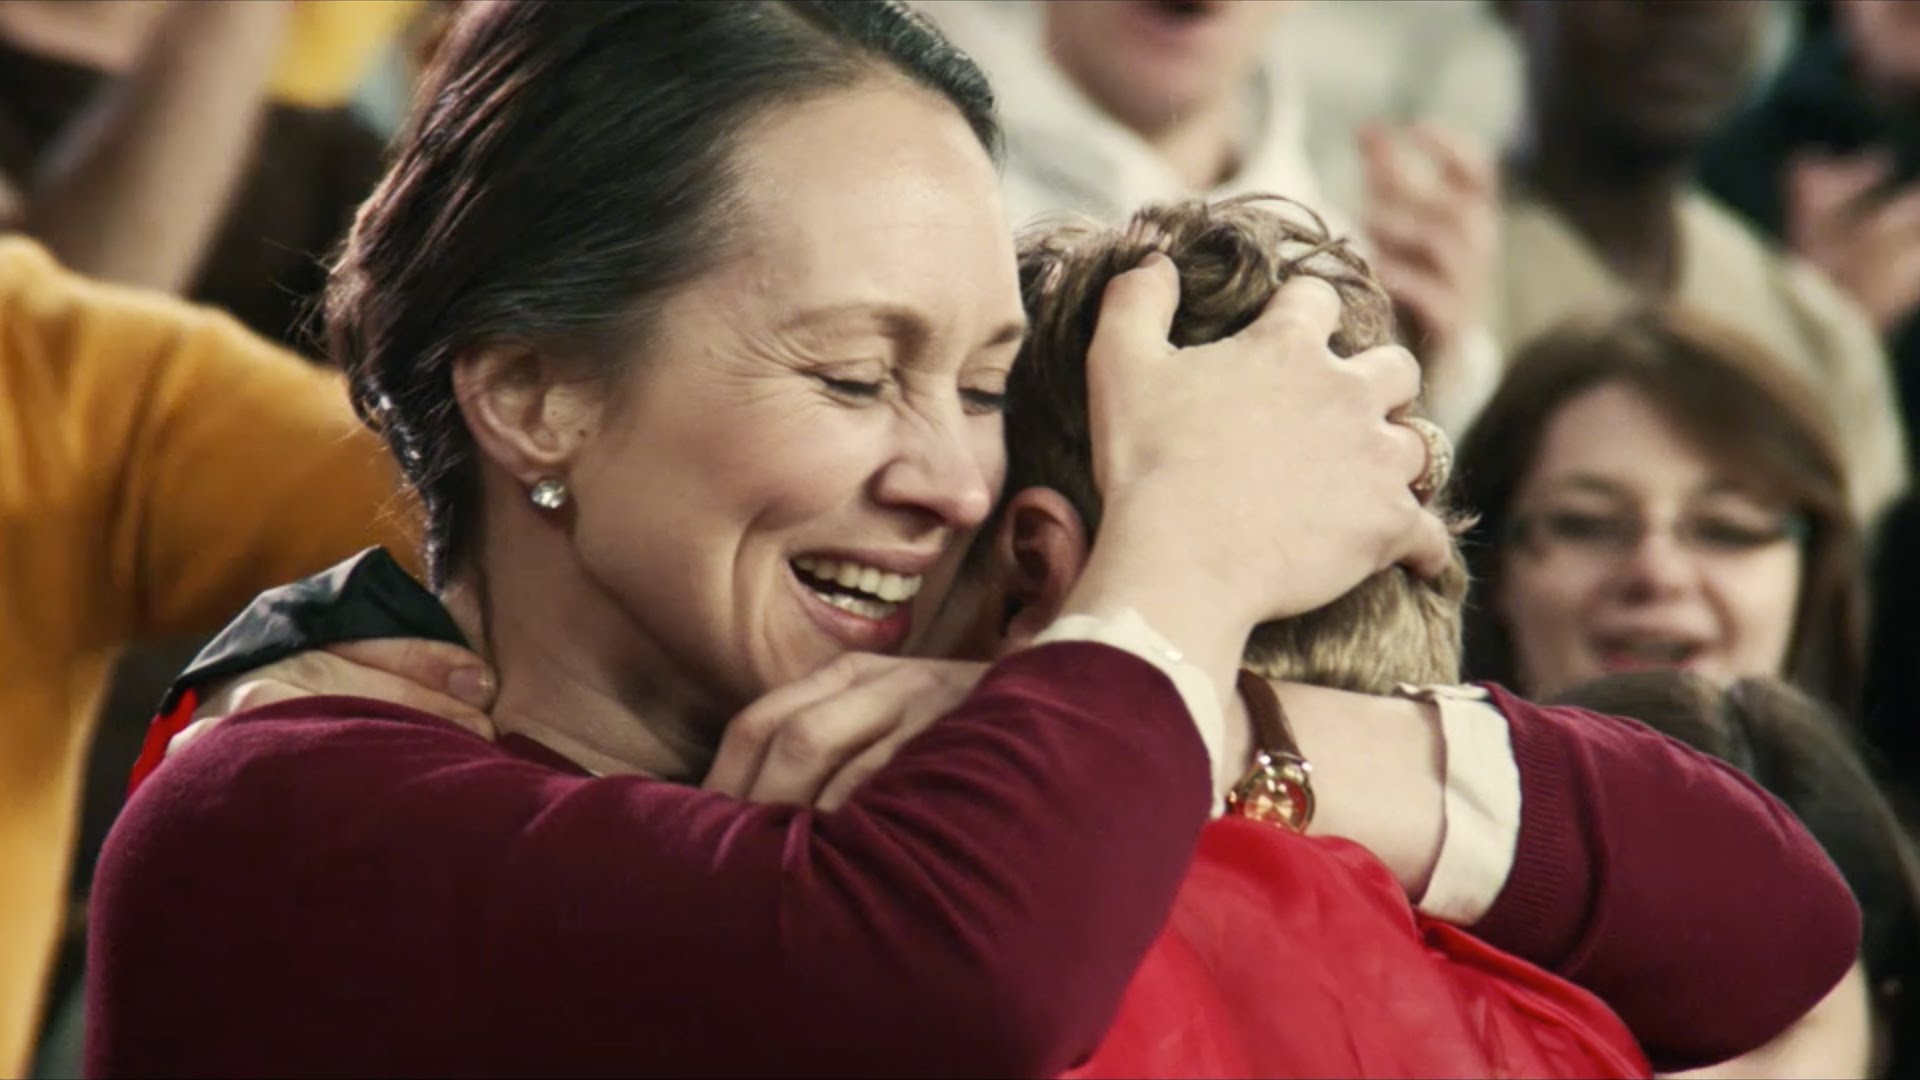 Thank you, mom campaign by P&G for Rio 2016